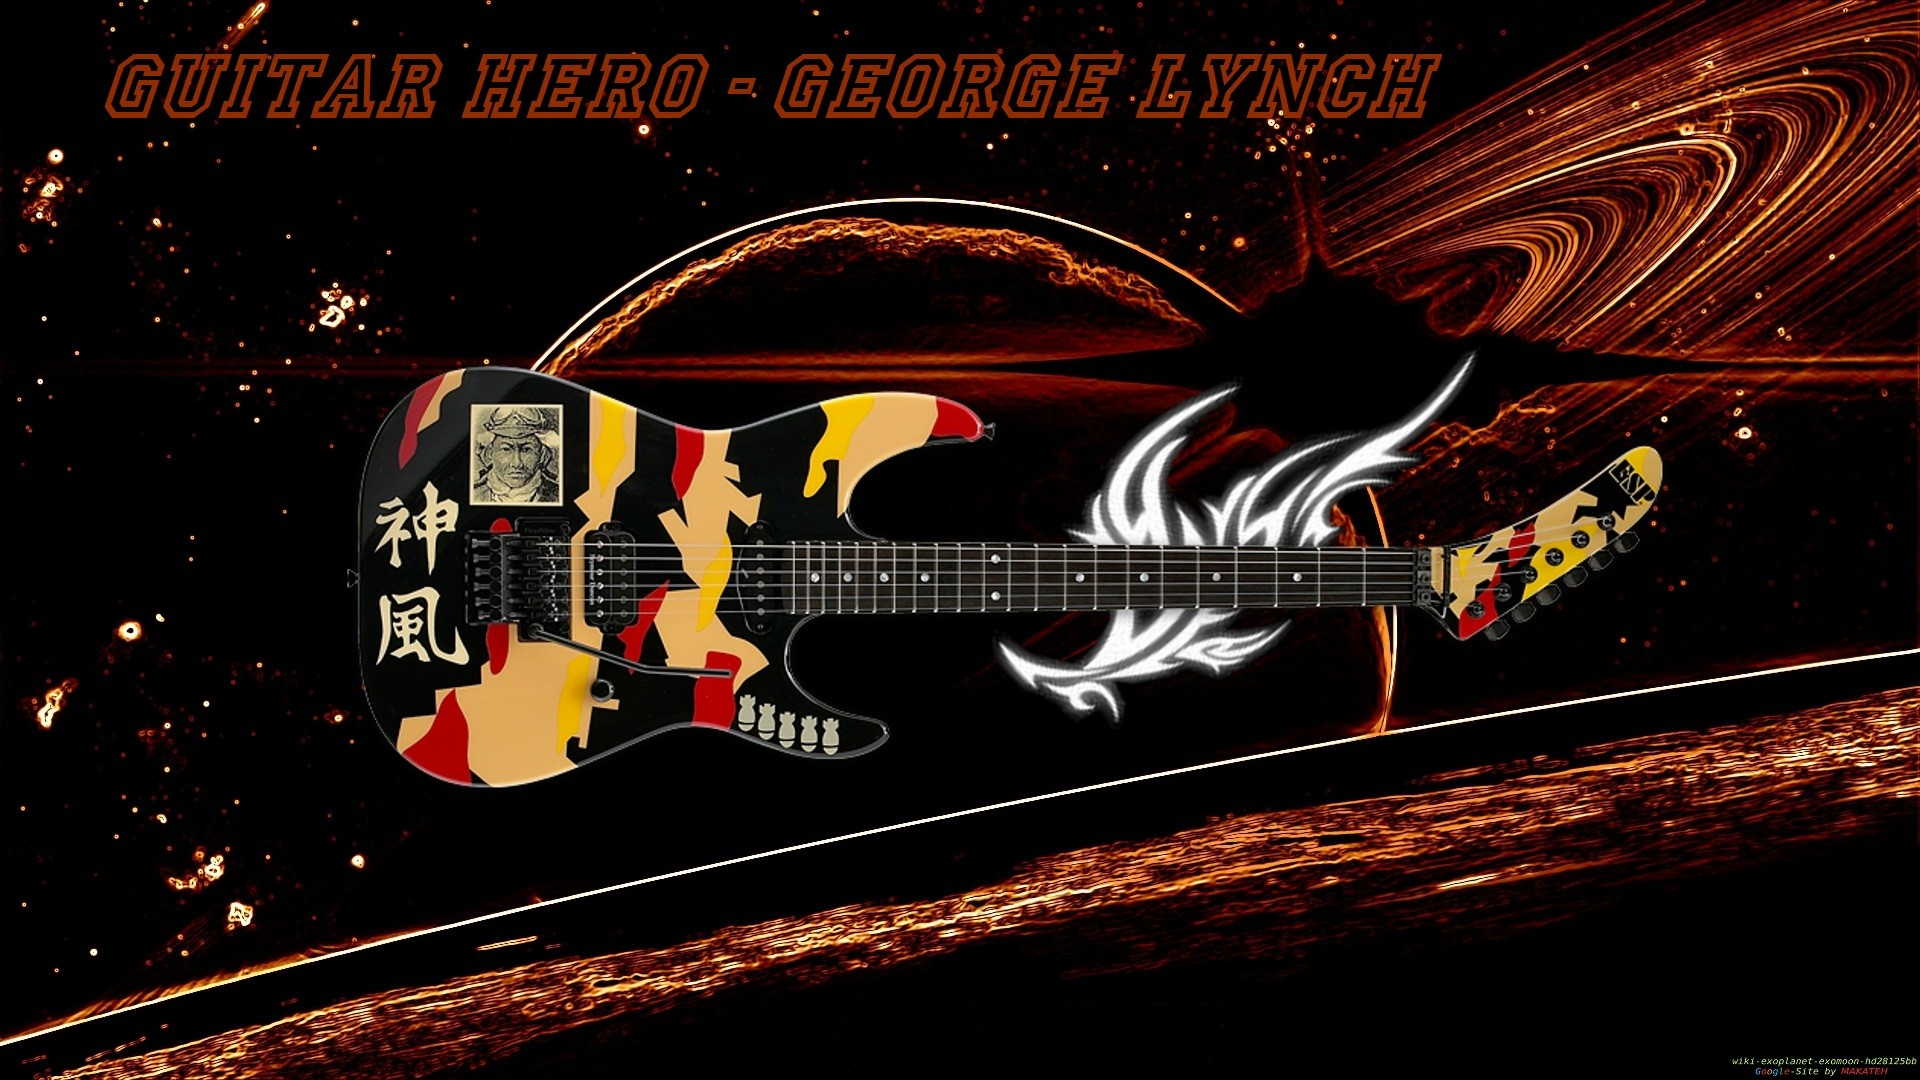 1920x1080 Heavy Metal Guitar Wallpaper Heavy-Guitar Computer Wallpapers, Desktop  Backgrounds ... Heavy Metal Guitar Wallpaper ...